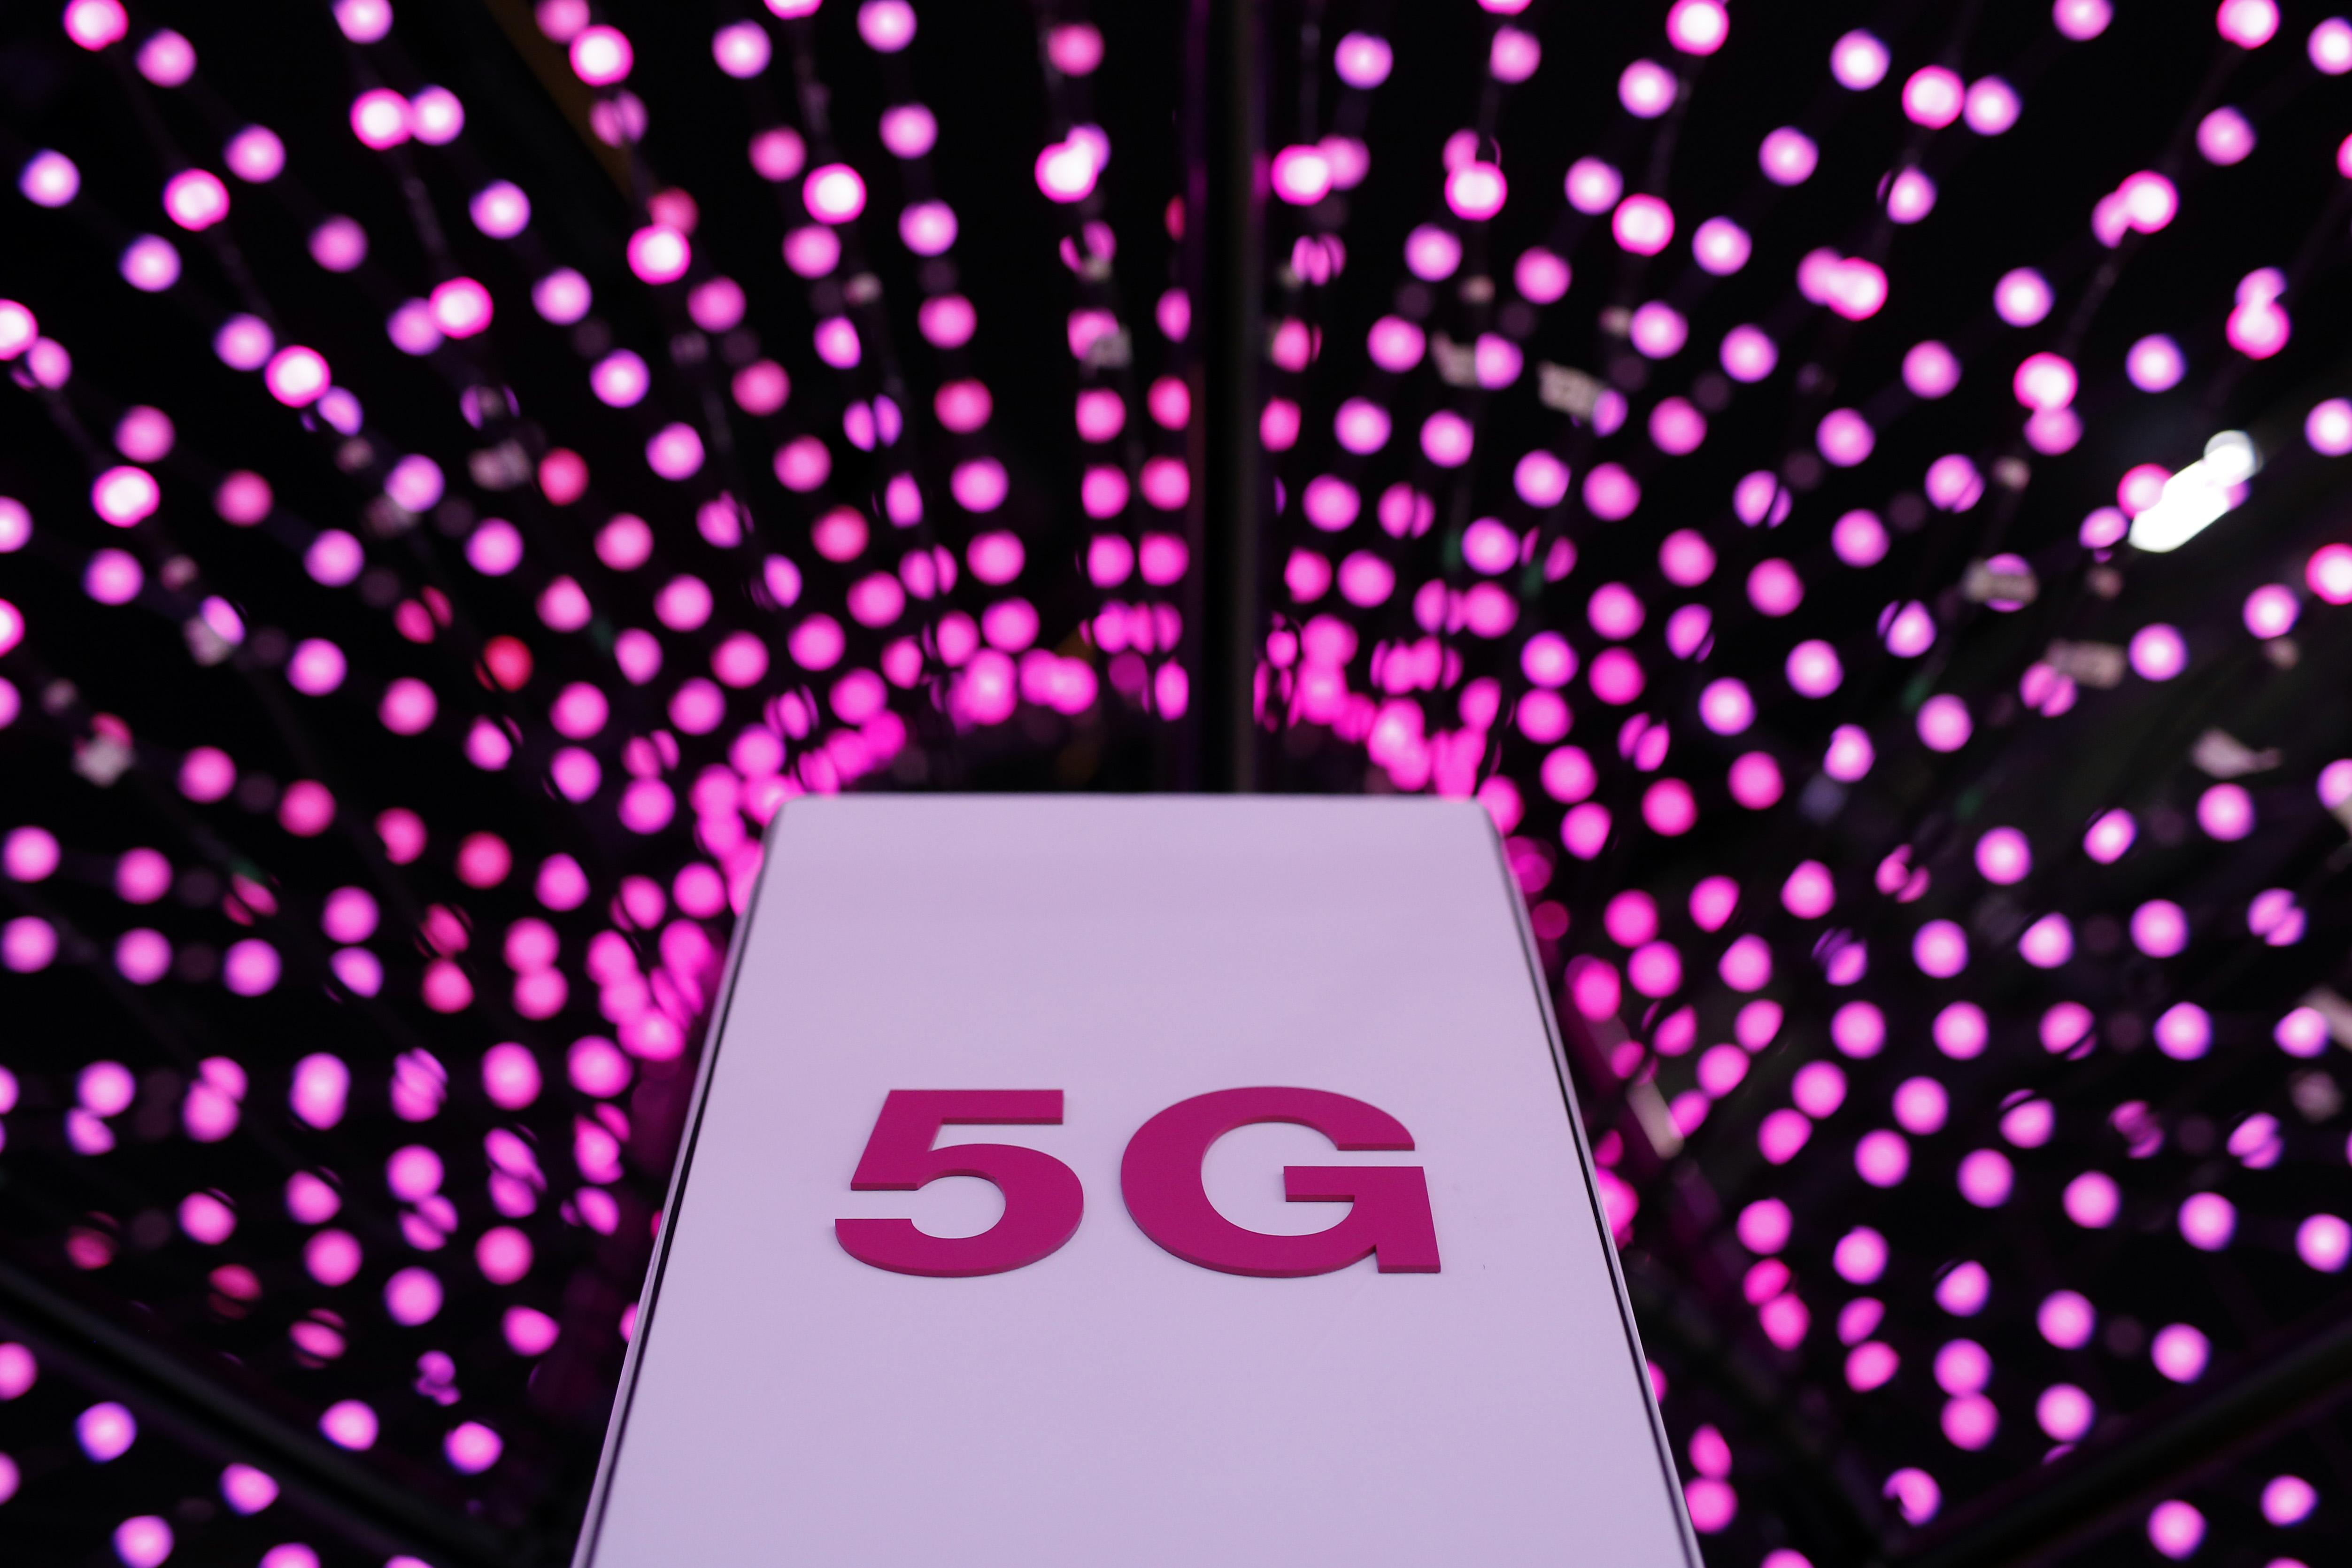 The Threat 5G Poses to Human Health